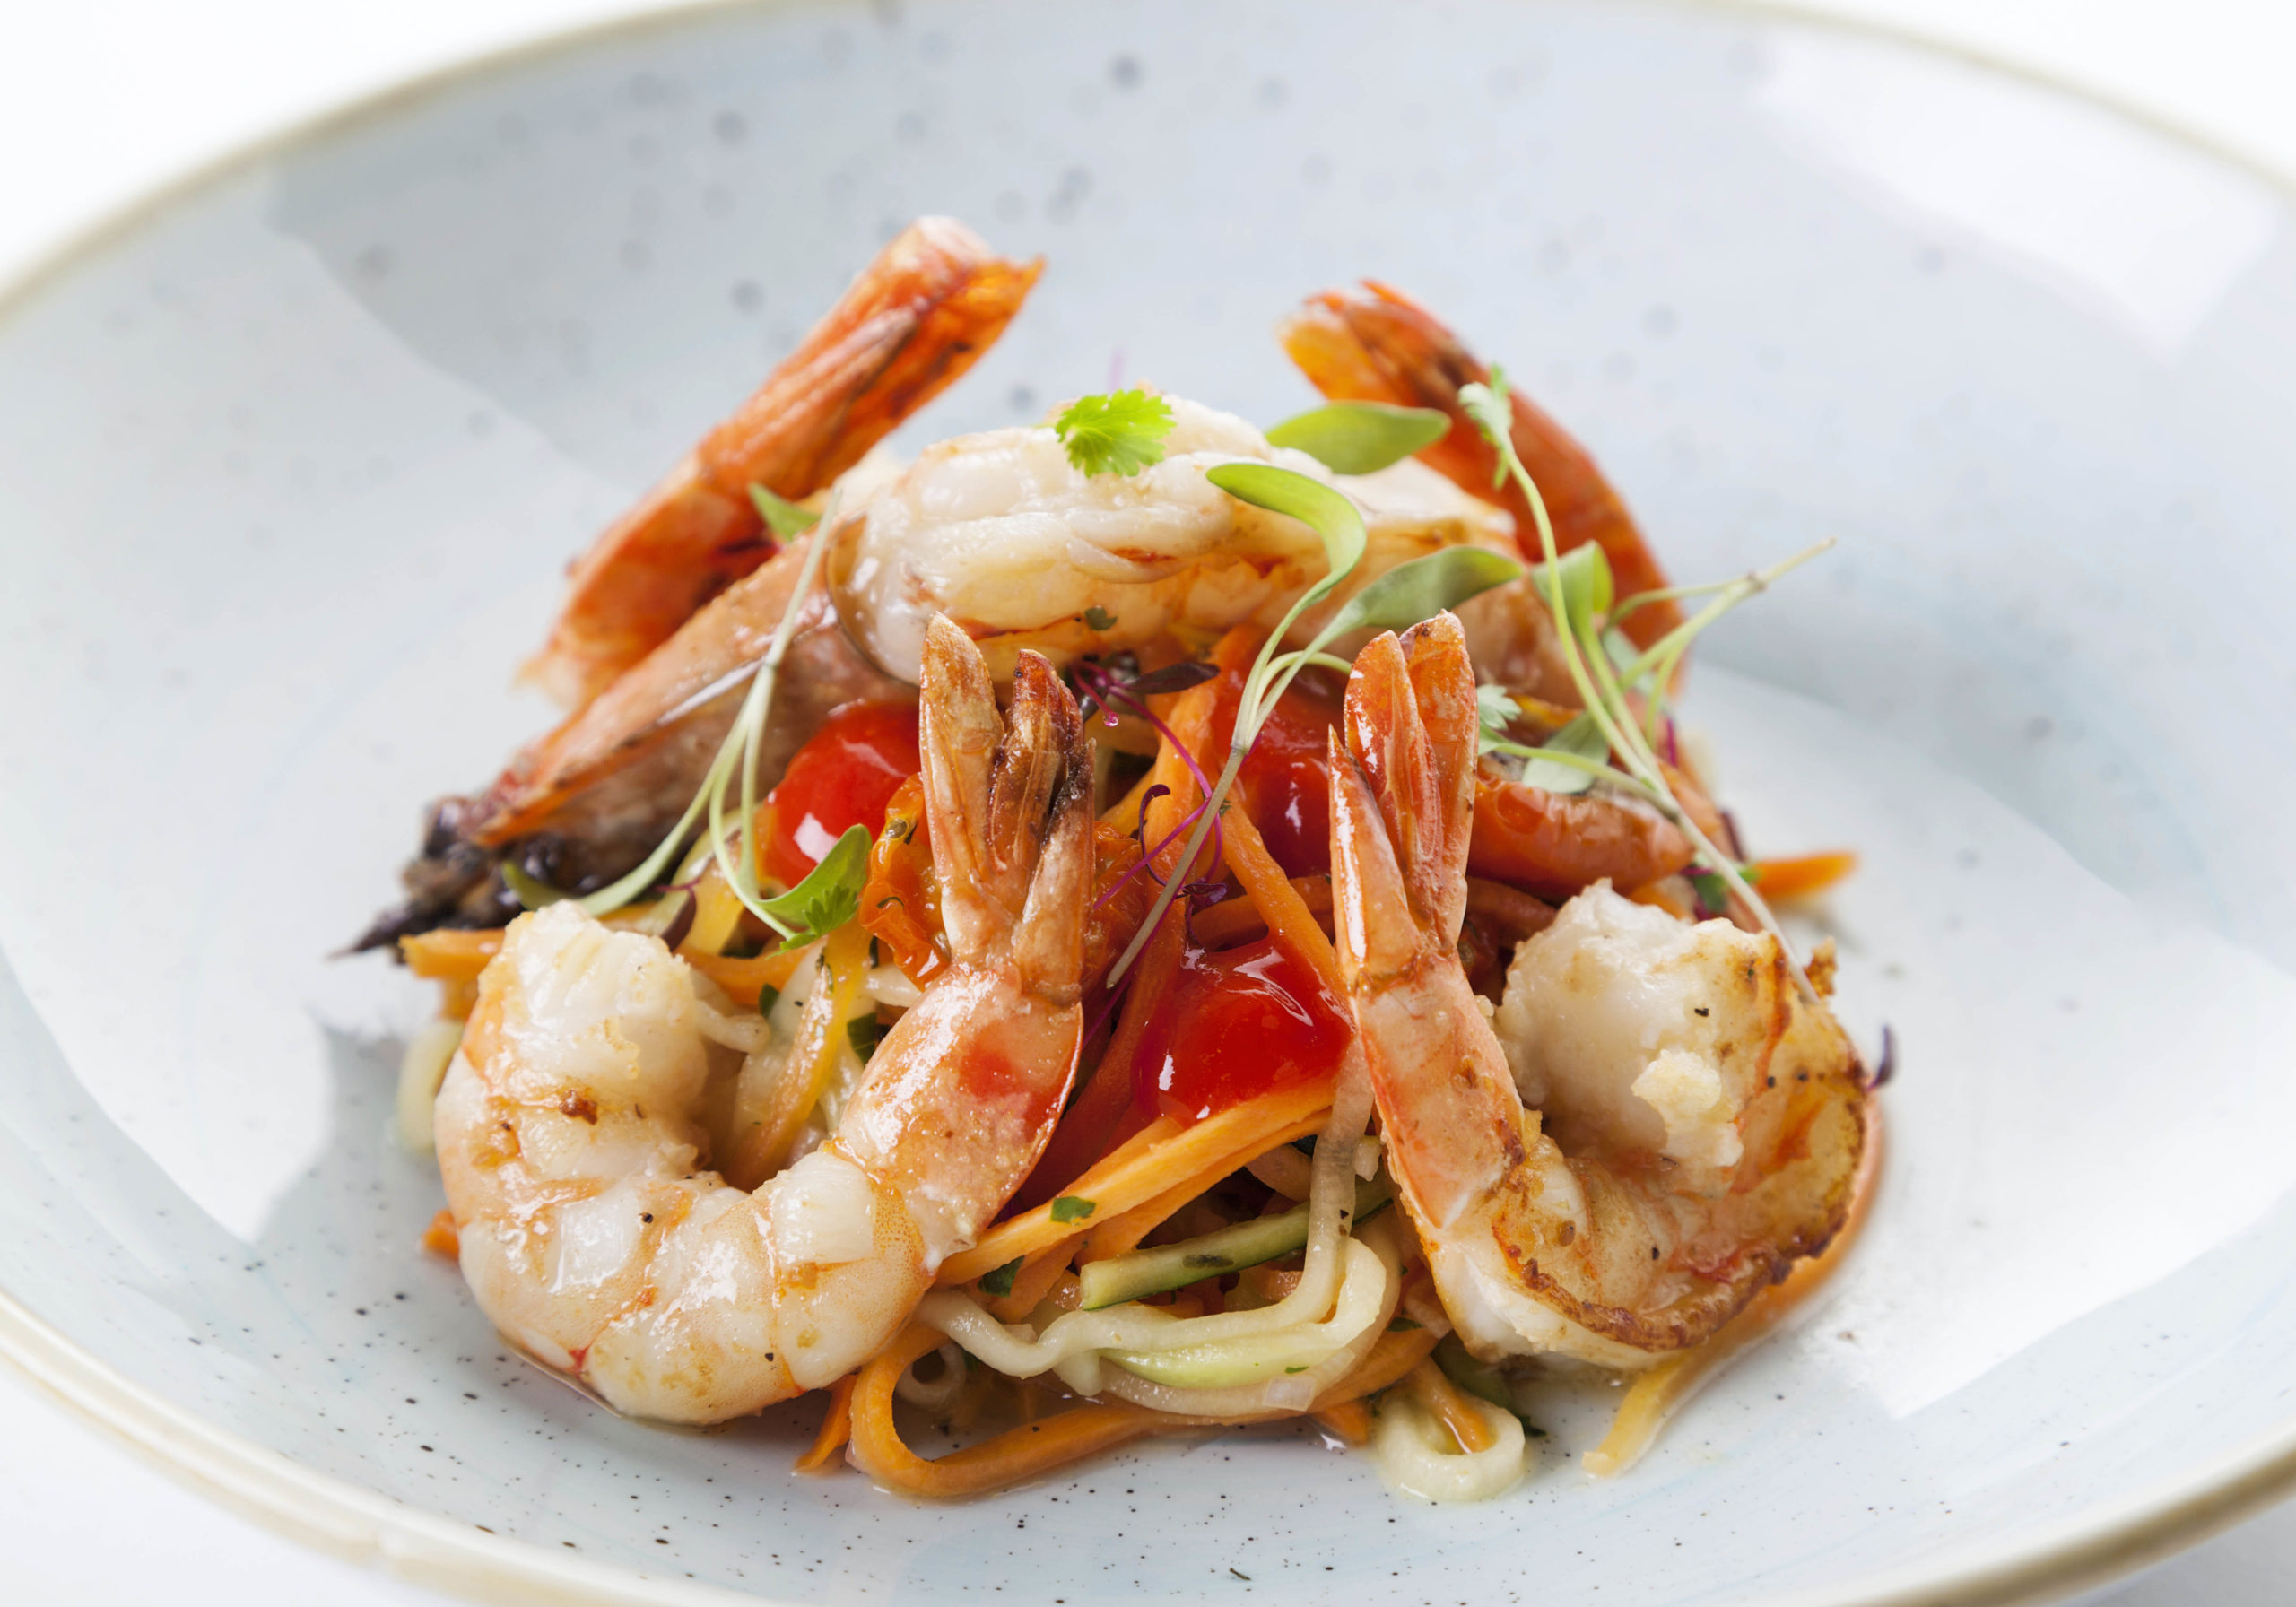 Zucchini & carrot salad with red prawns and lemon vinaigrette Recipe by Chef Igor Cikarev of The Gibson Hotel